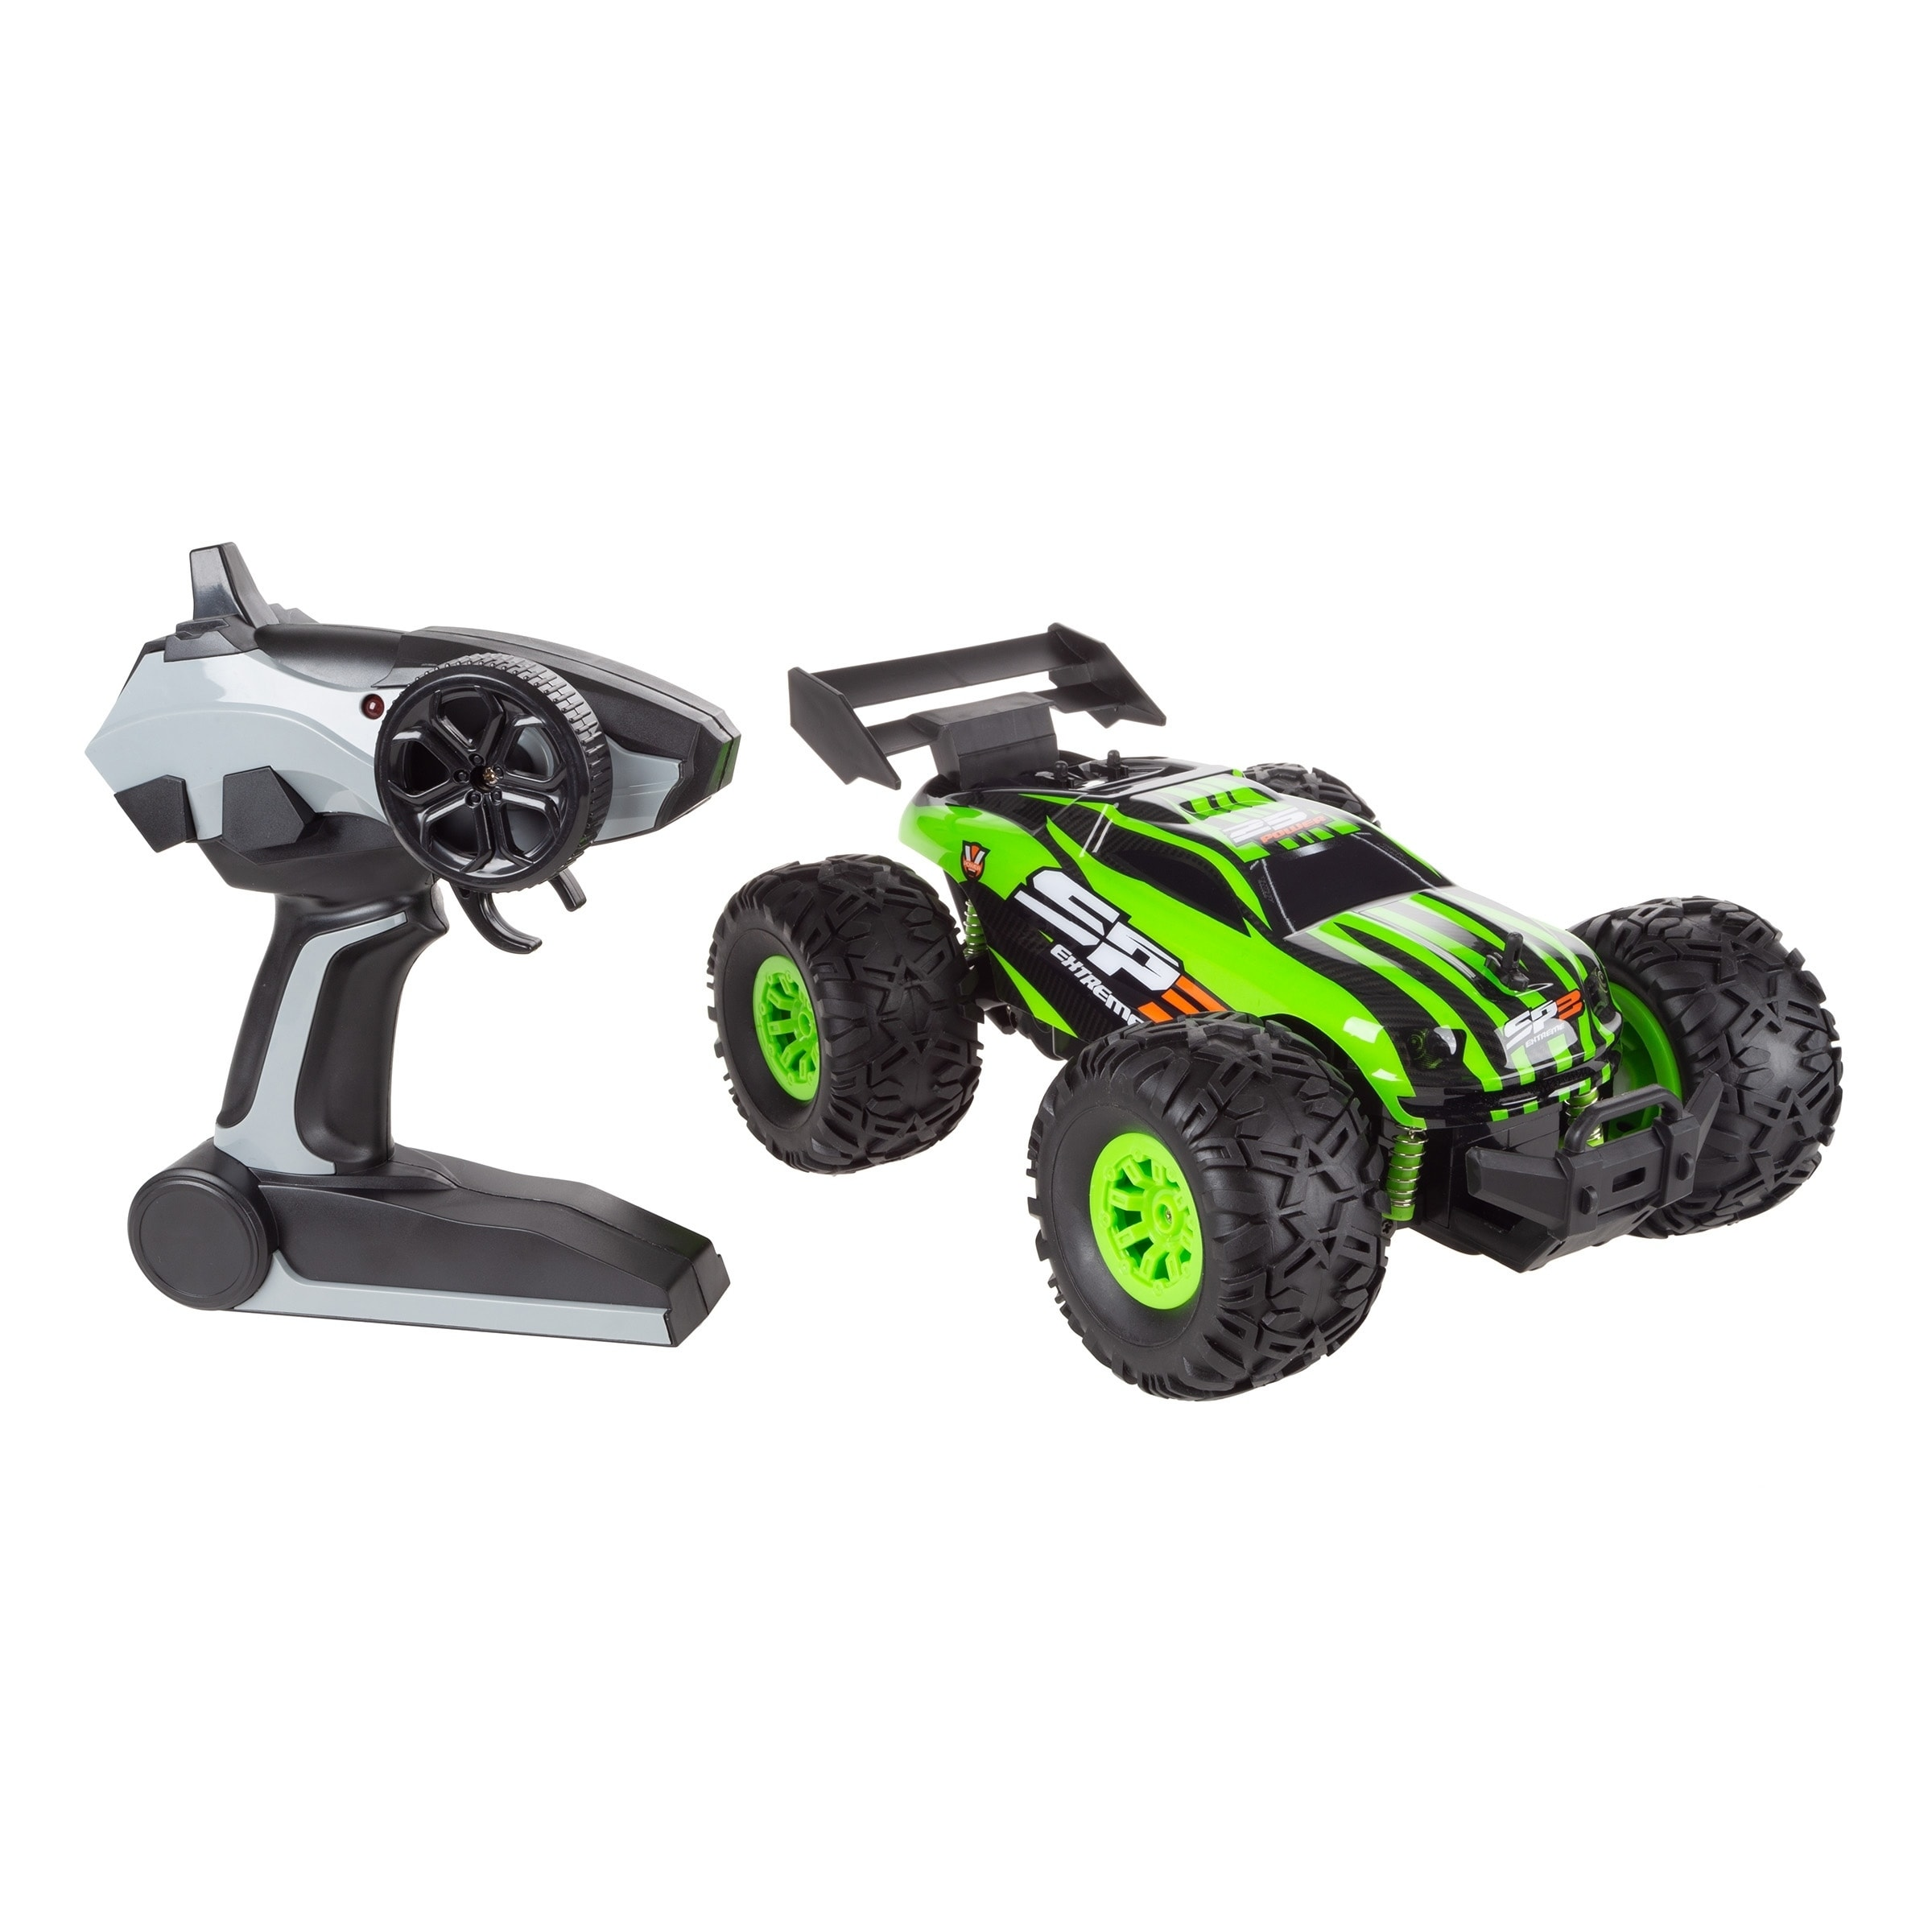 Shop Remote Control Monster Truck 1 16 Scale 2 4 Ghz Rc Off Road Toy By Hey Play 11 X 7 75 X 5 Overstock 28502860